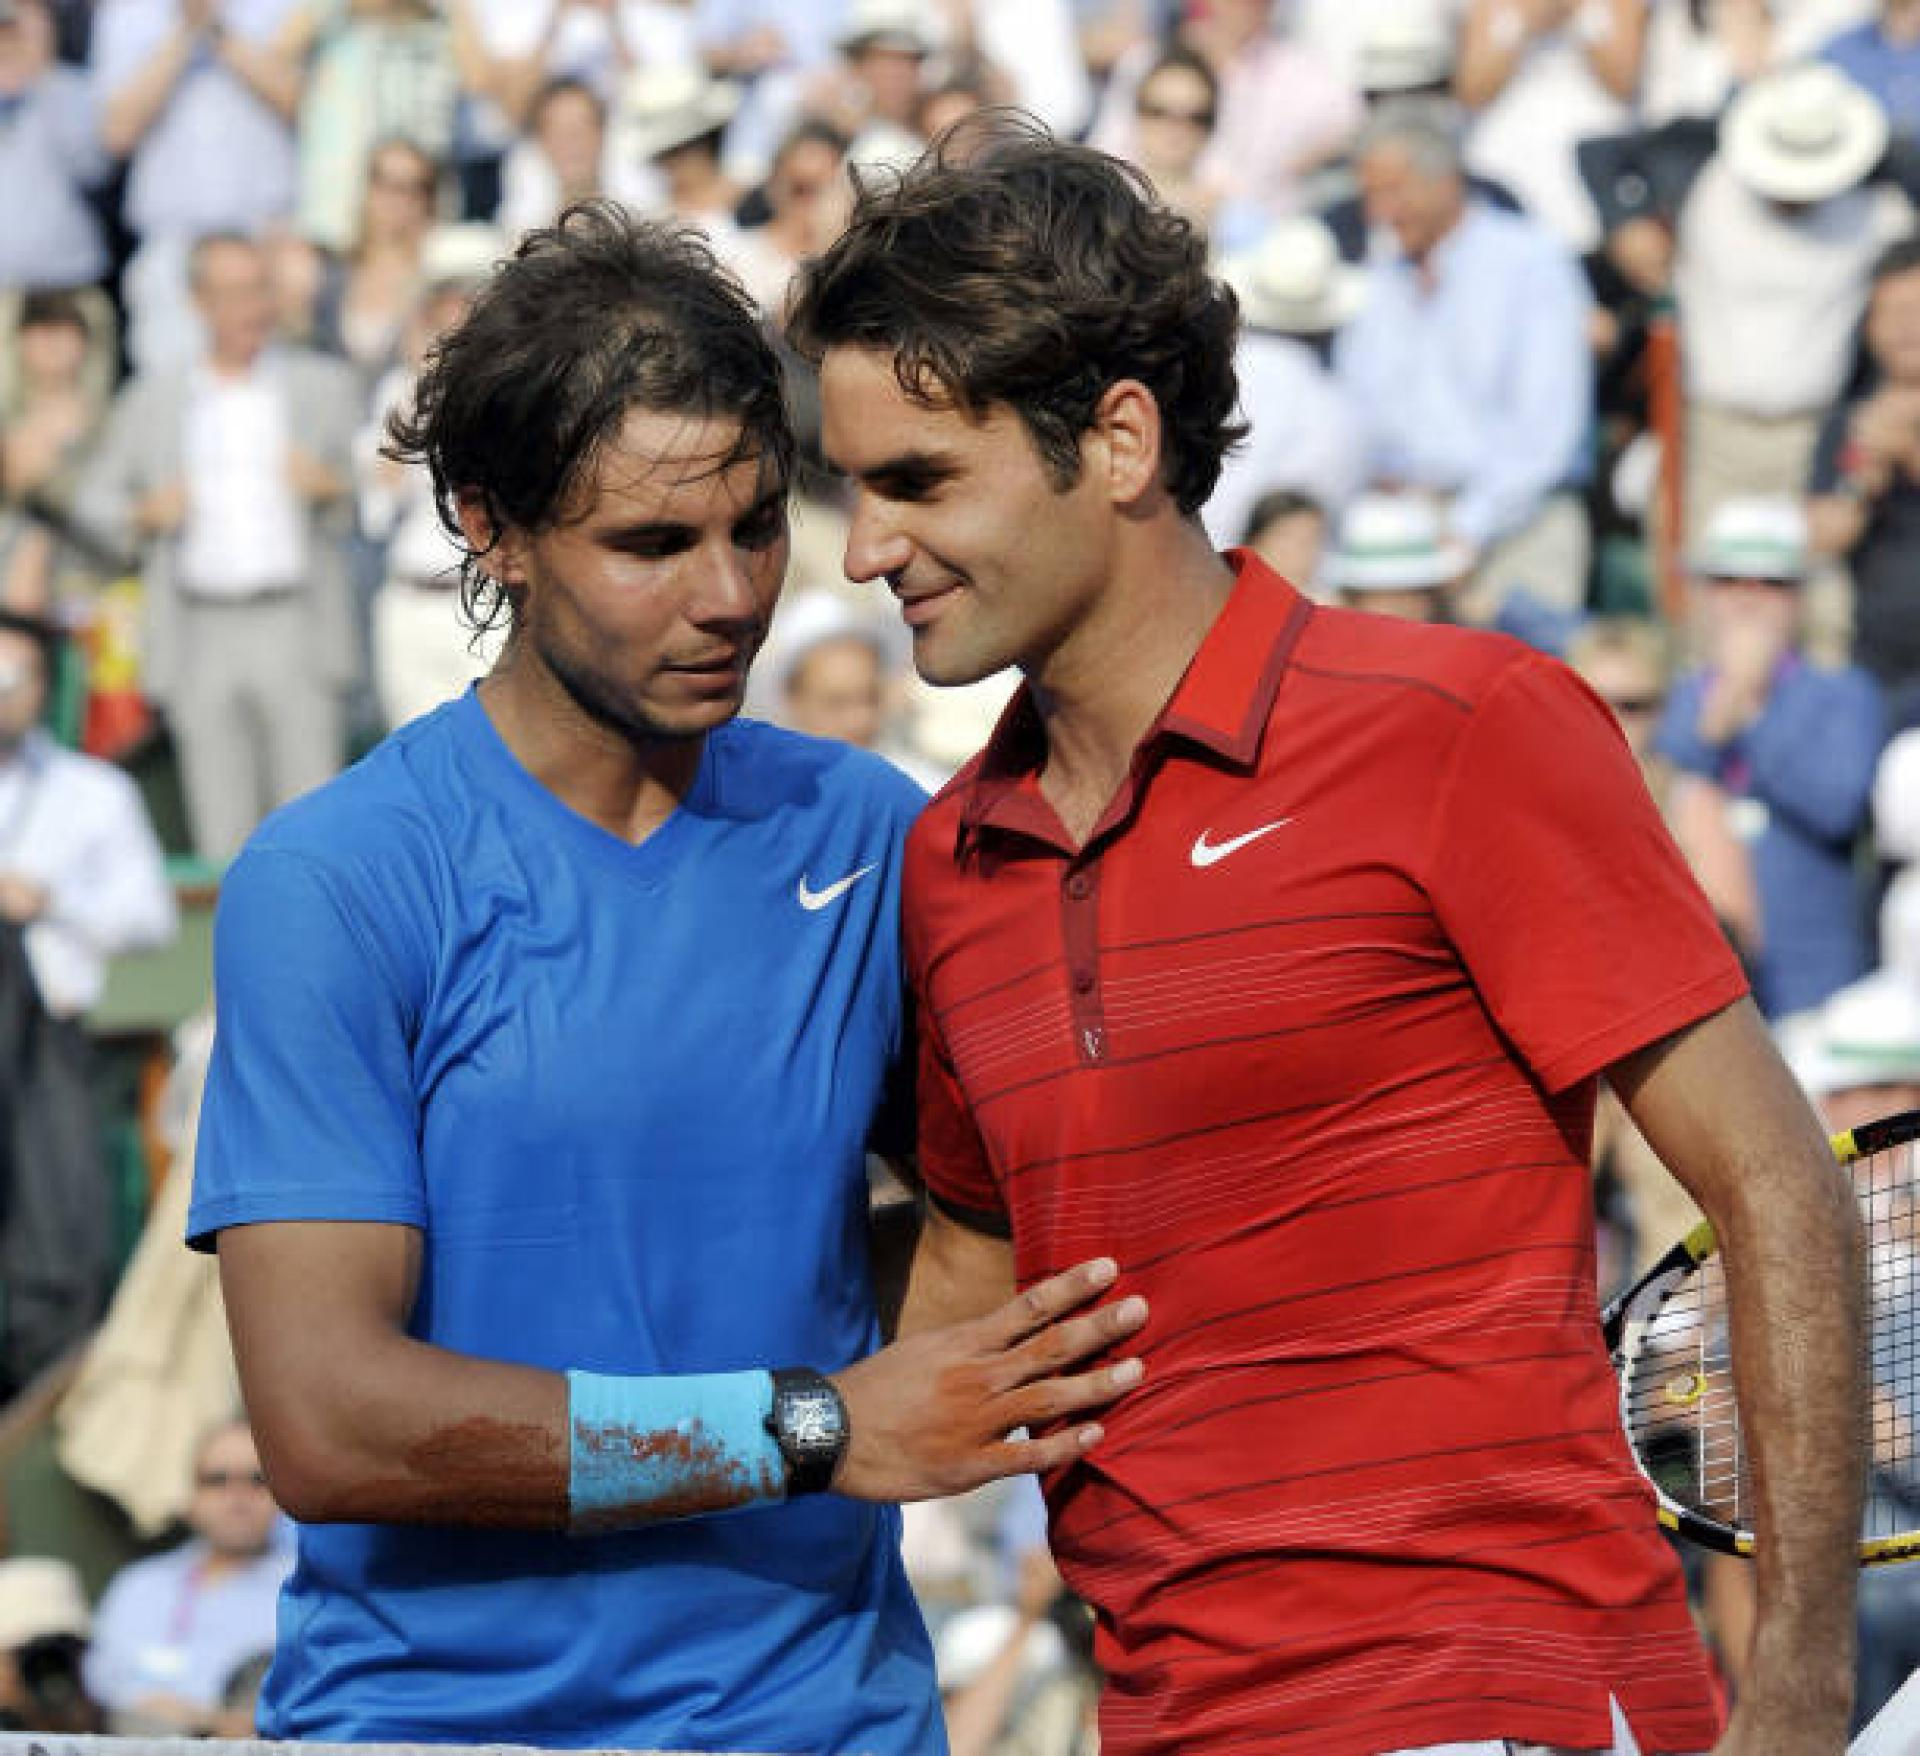 Coach reveals the key for Roger Federer, Nadal to go far at the French Open